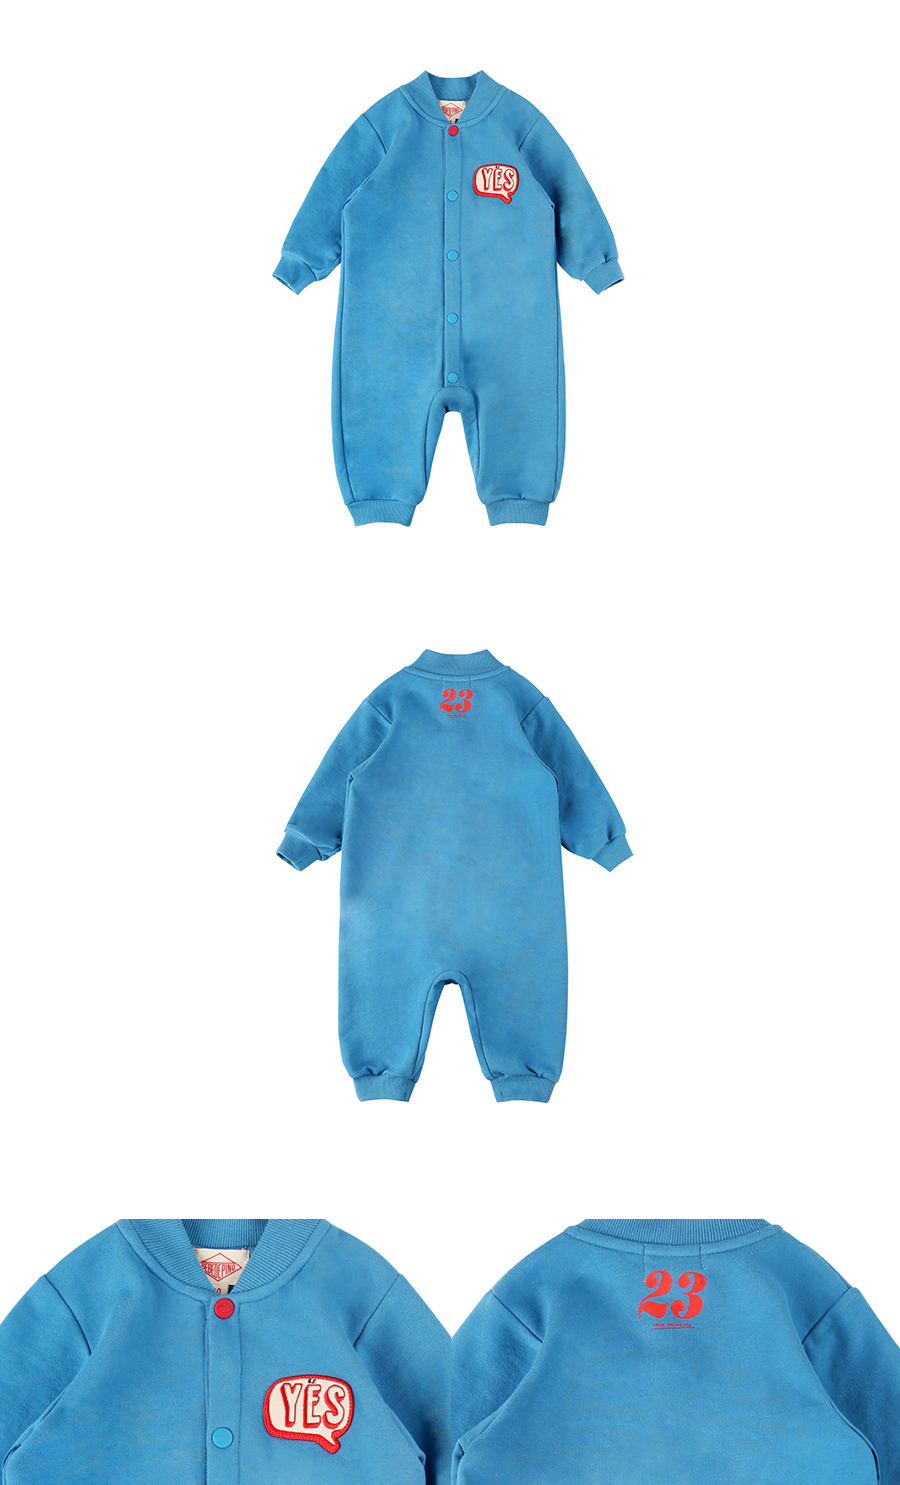 Yes wappen baby blue overall 상세 이미지